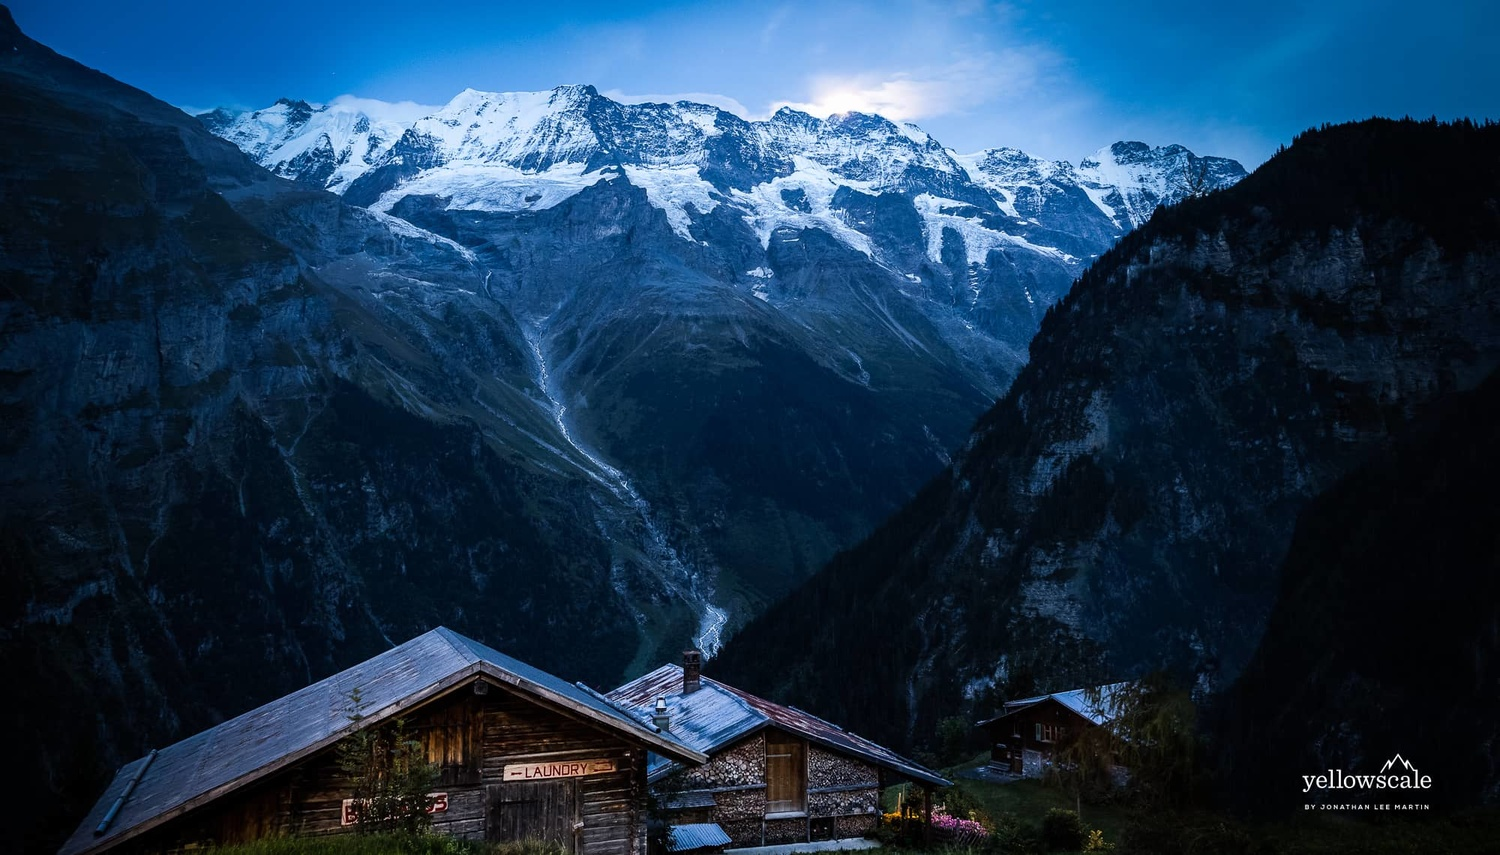 Moonlit Jungfrau over the Swiss hilltown of Gimmelwald.